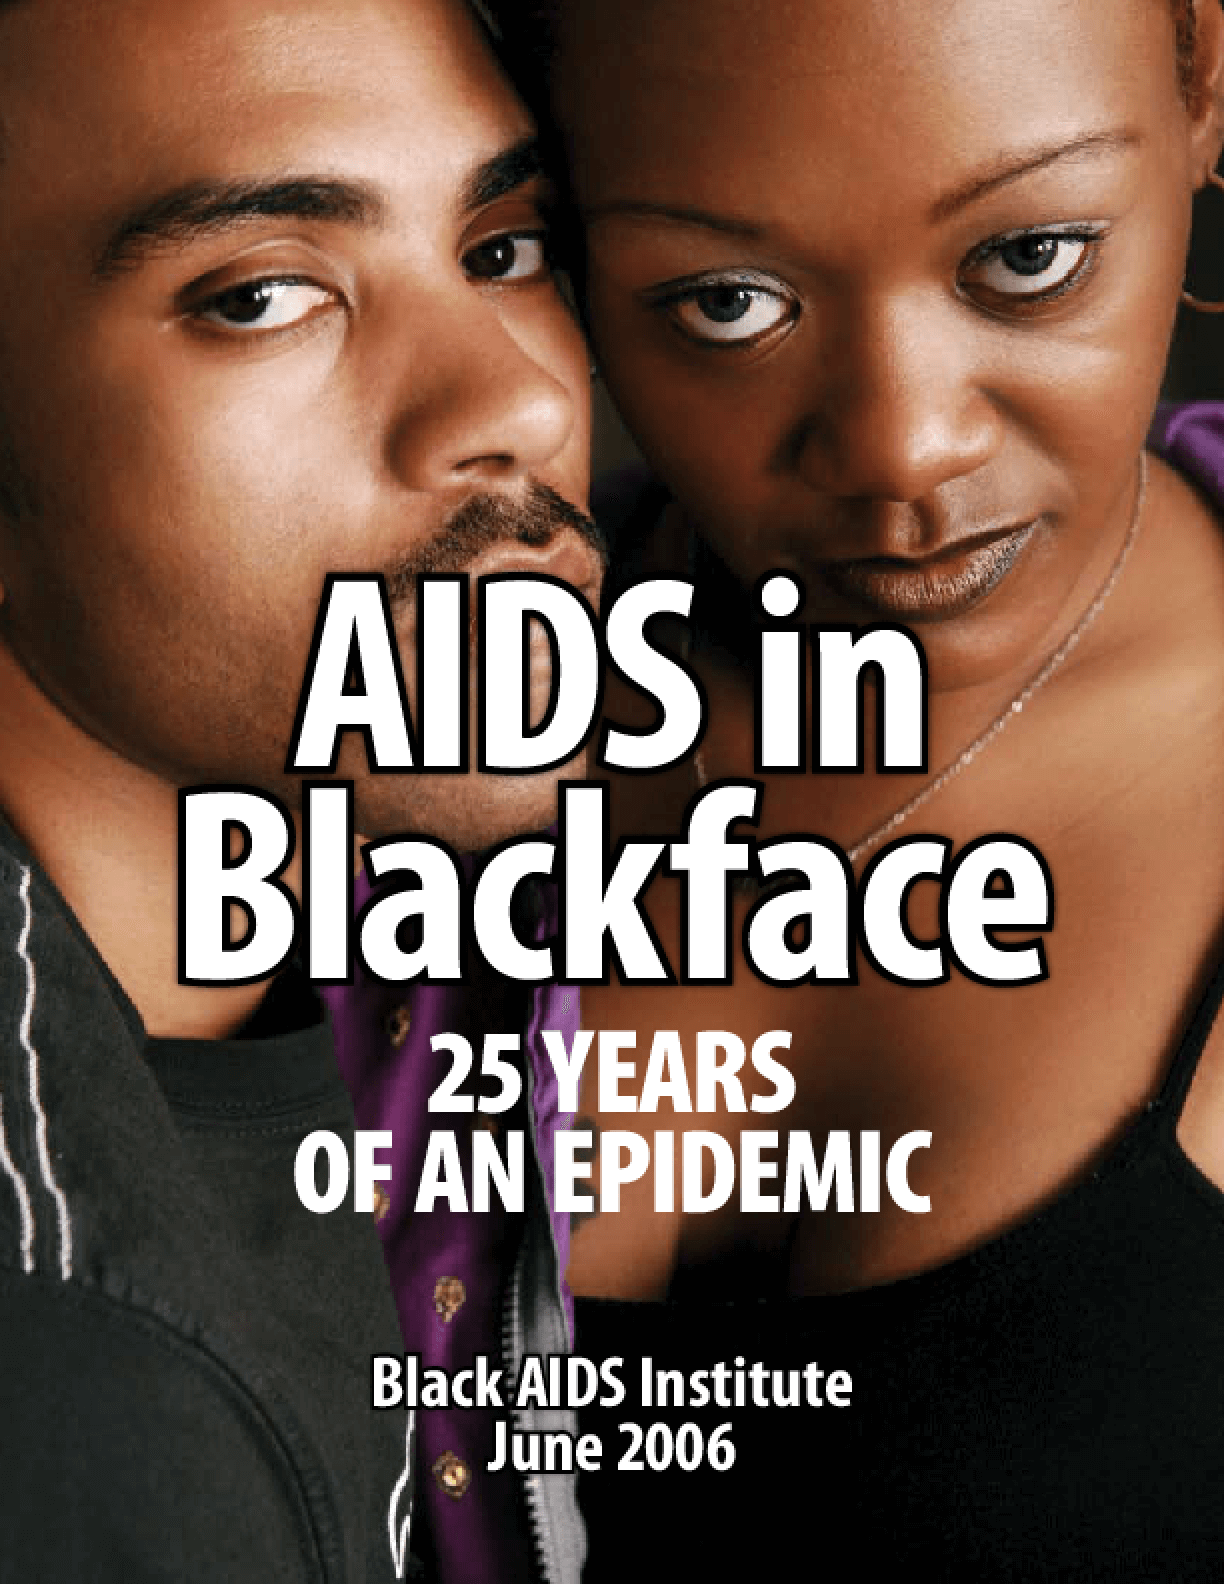 AIDS in Blackface: 25 Years of an Epidemic